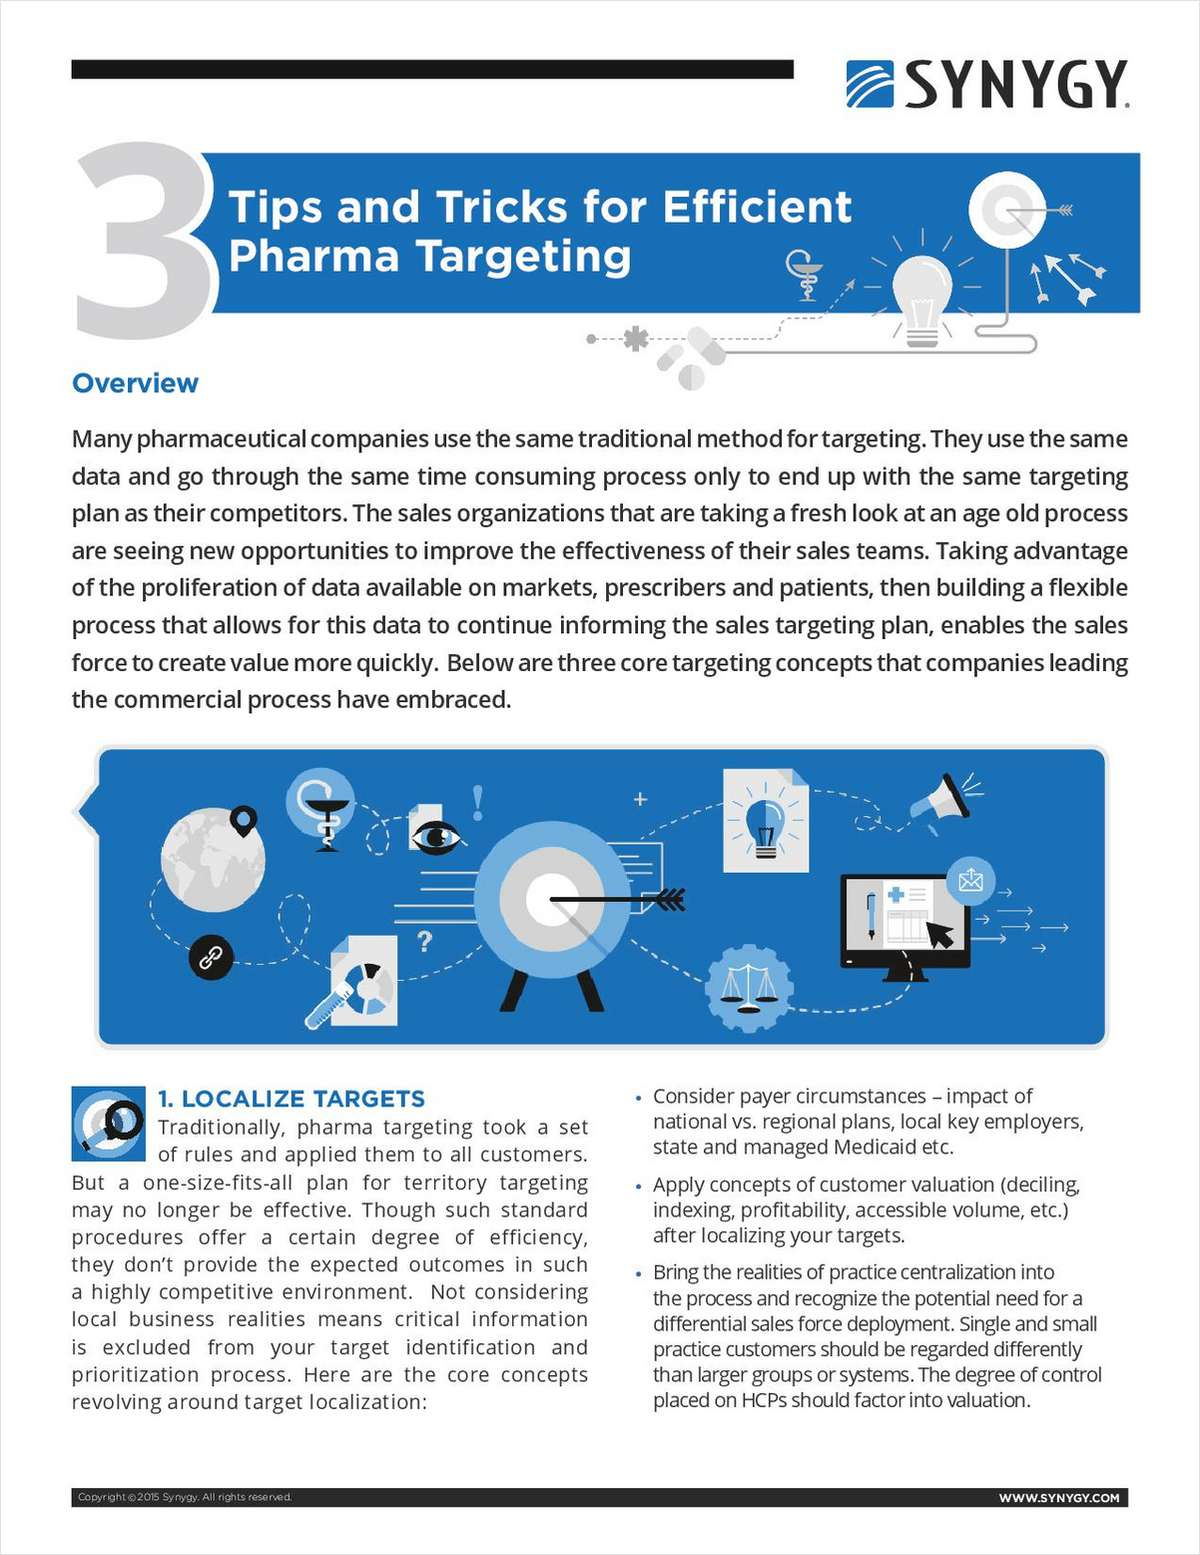 3 Tips and Tricks for Efficient Pharma Targeting